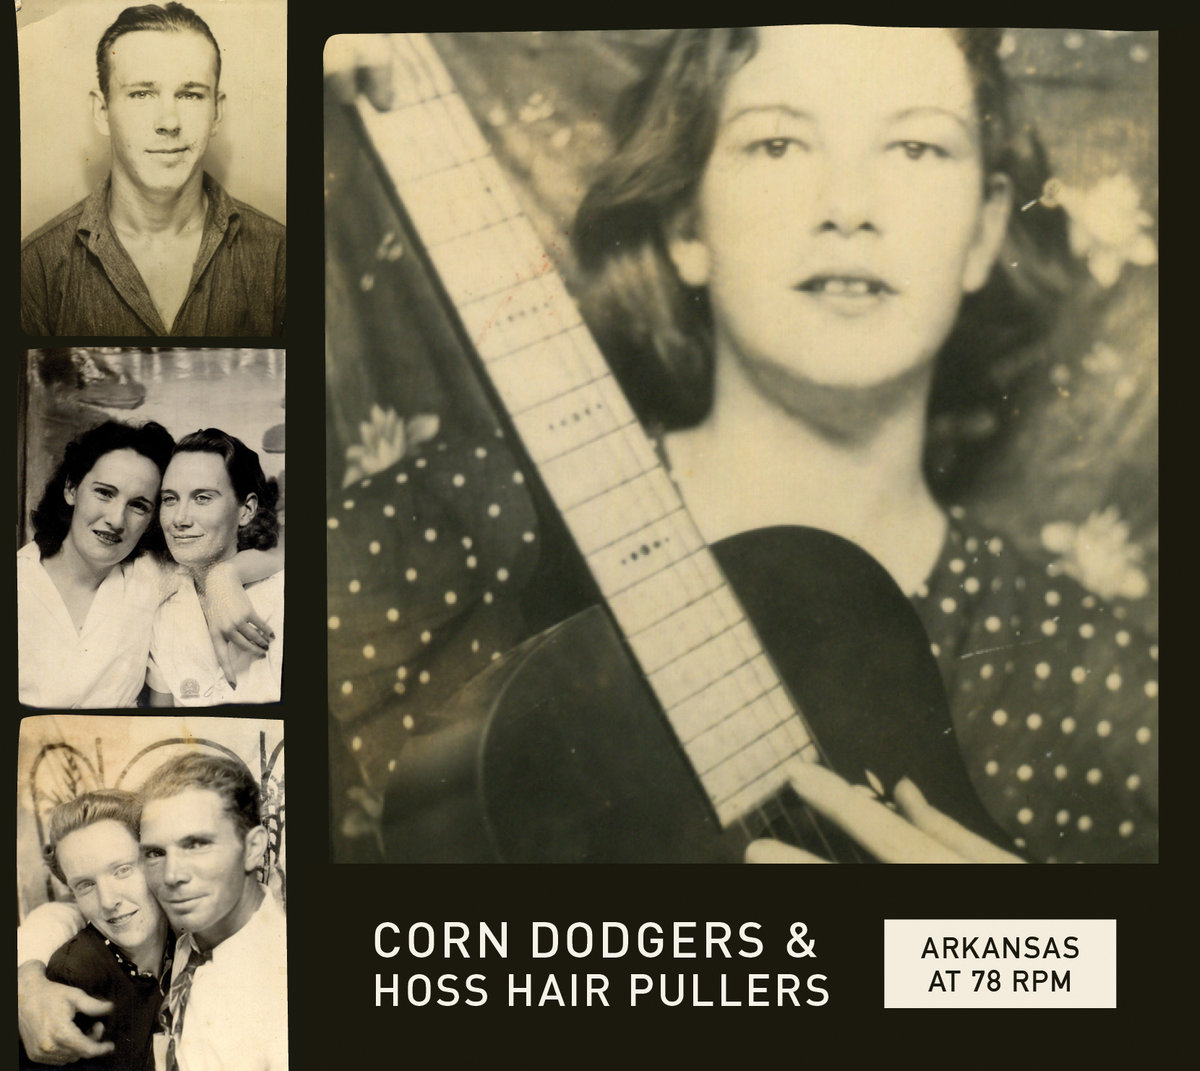 Arkansas at 78 RPM: Corn Dodgers and Hoss Hair Pullers  Release Date: September 30, 2014 Label: Dust-to-Digital  SERVICE: Restoration, Mastering SOURCE MATERIAL: 78 rpm records NUMBER OF DISCS: 1 GENRE: Roots FORMAT: CD